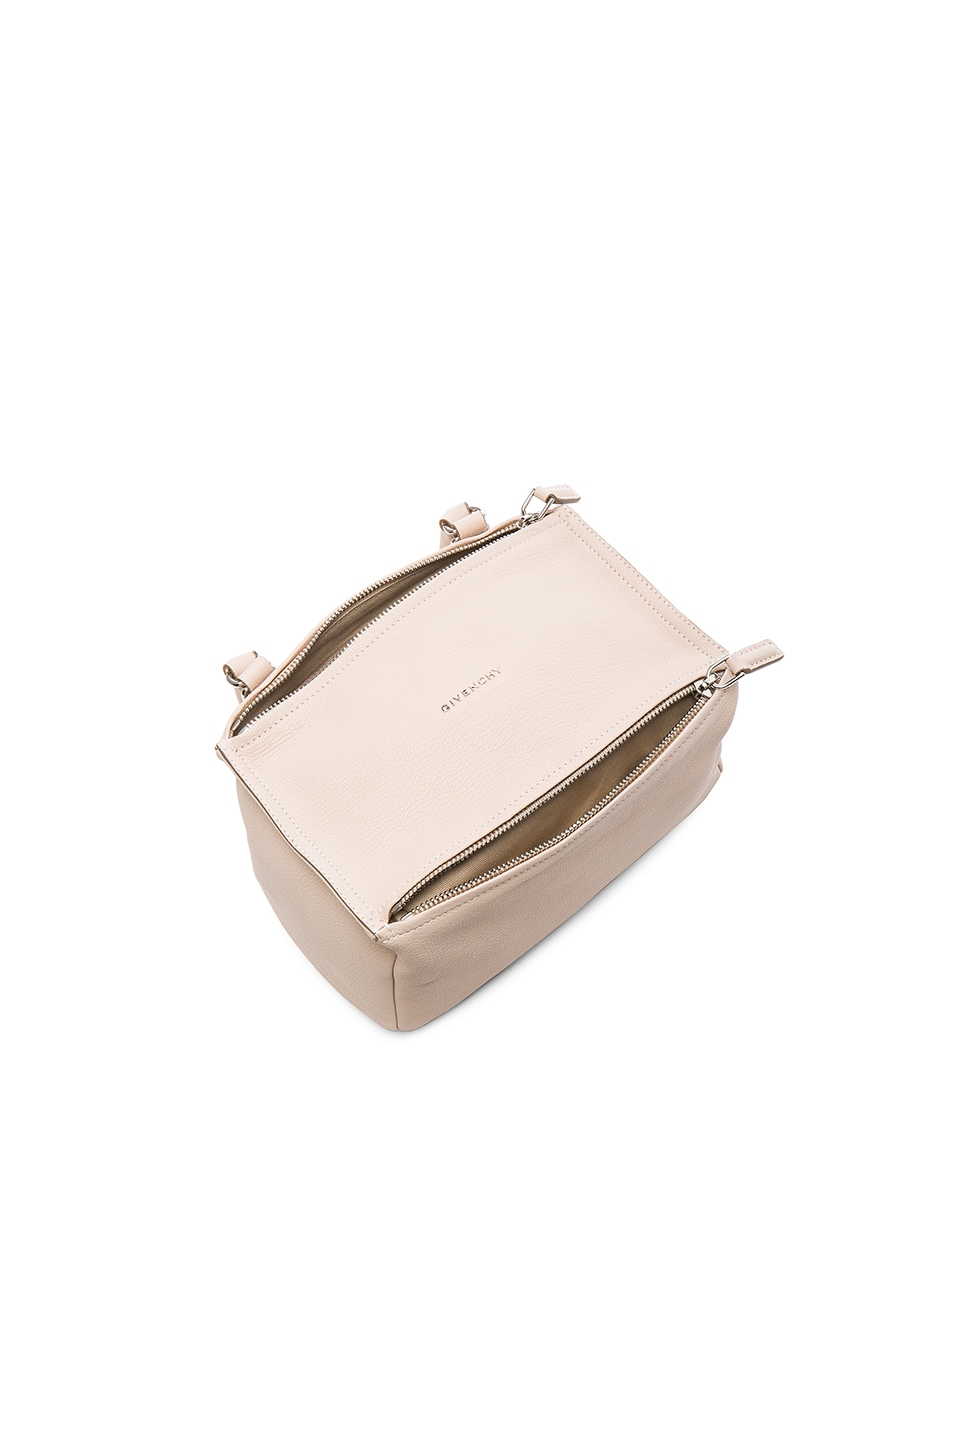 Image 3 of Givenchy Small Sugar Pandora in Nude Pink 649980d953